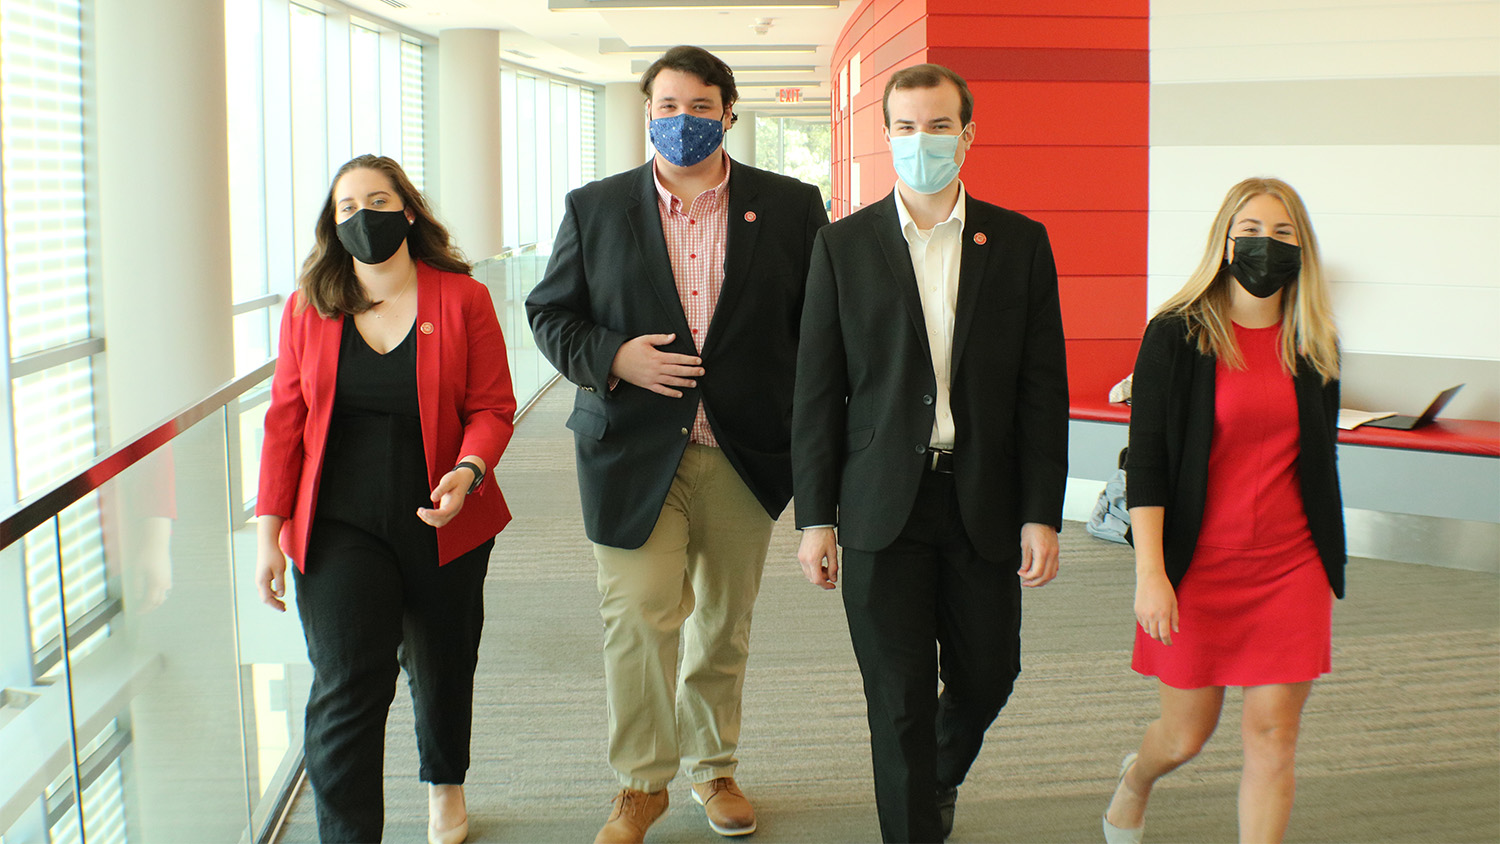 Four Student Government leaders walk side by side through a hallway in Talley Student Union